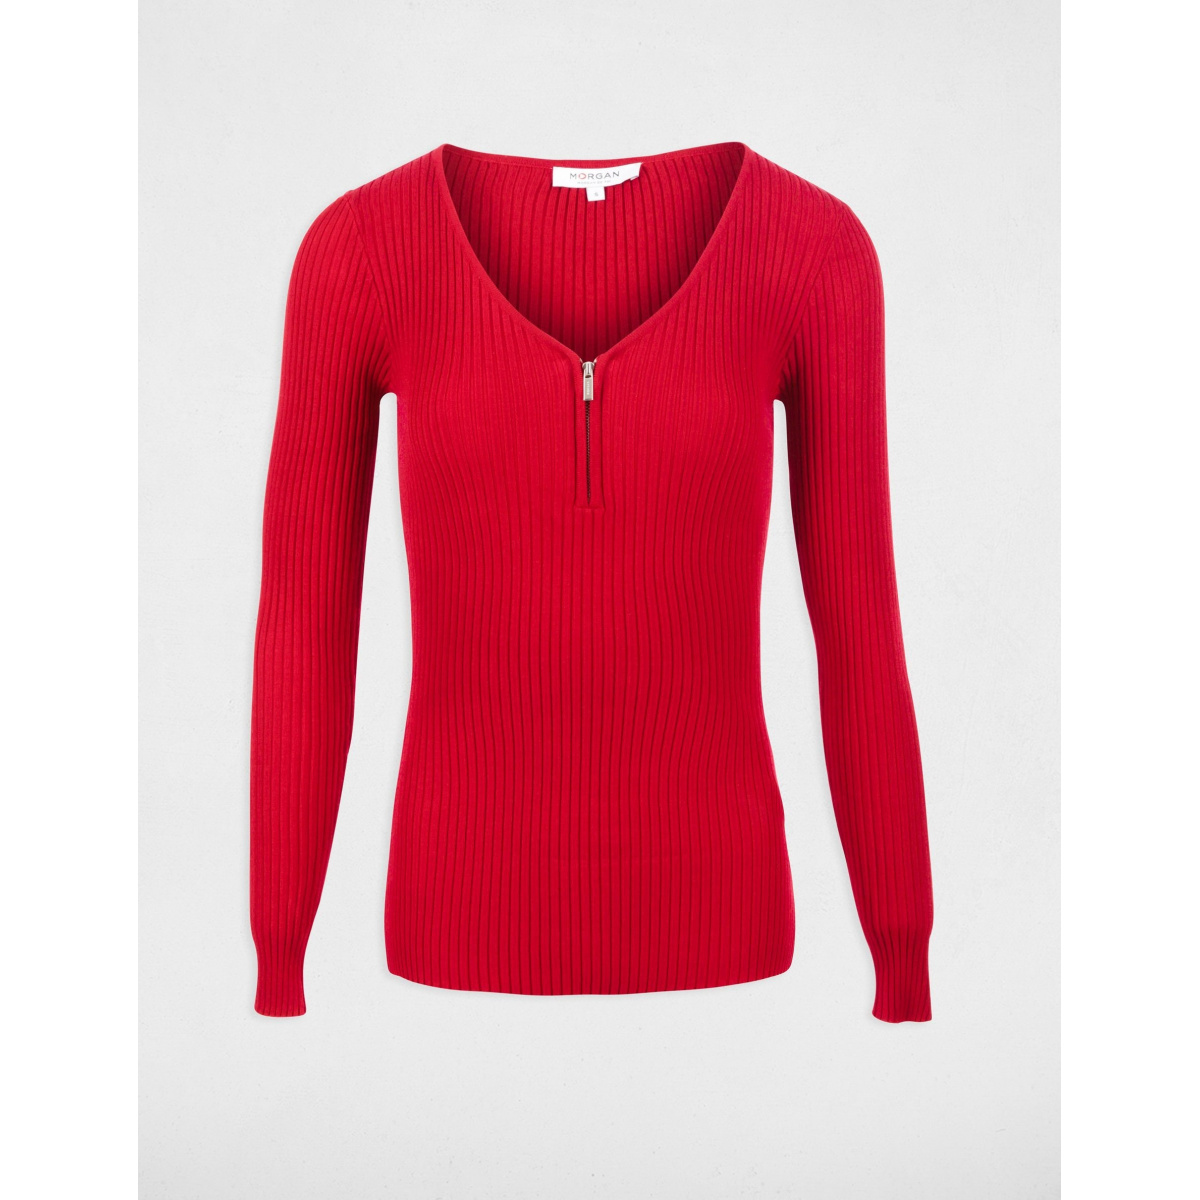 Rouge Pull Femme Morgan Mode Ccv Upx4waqx